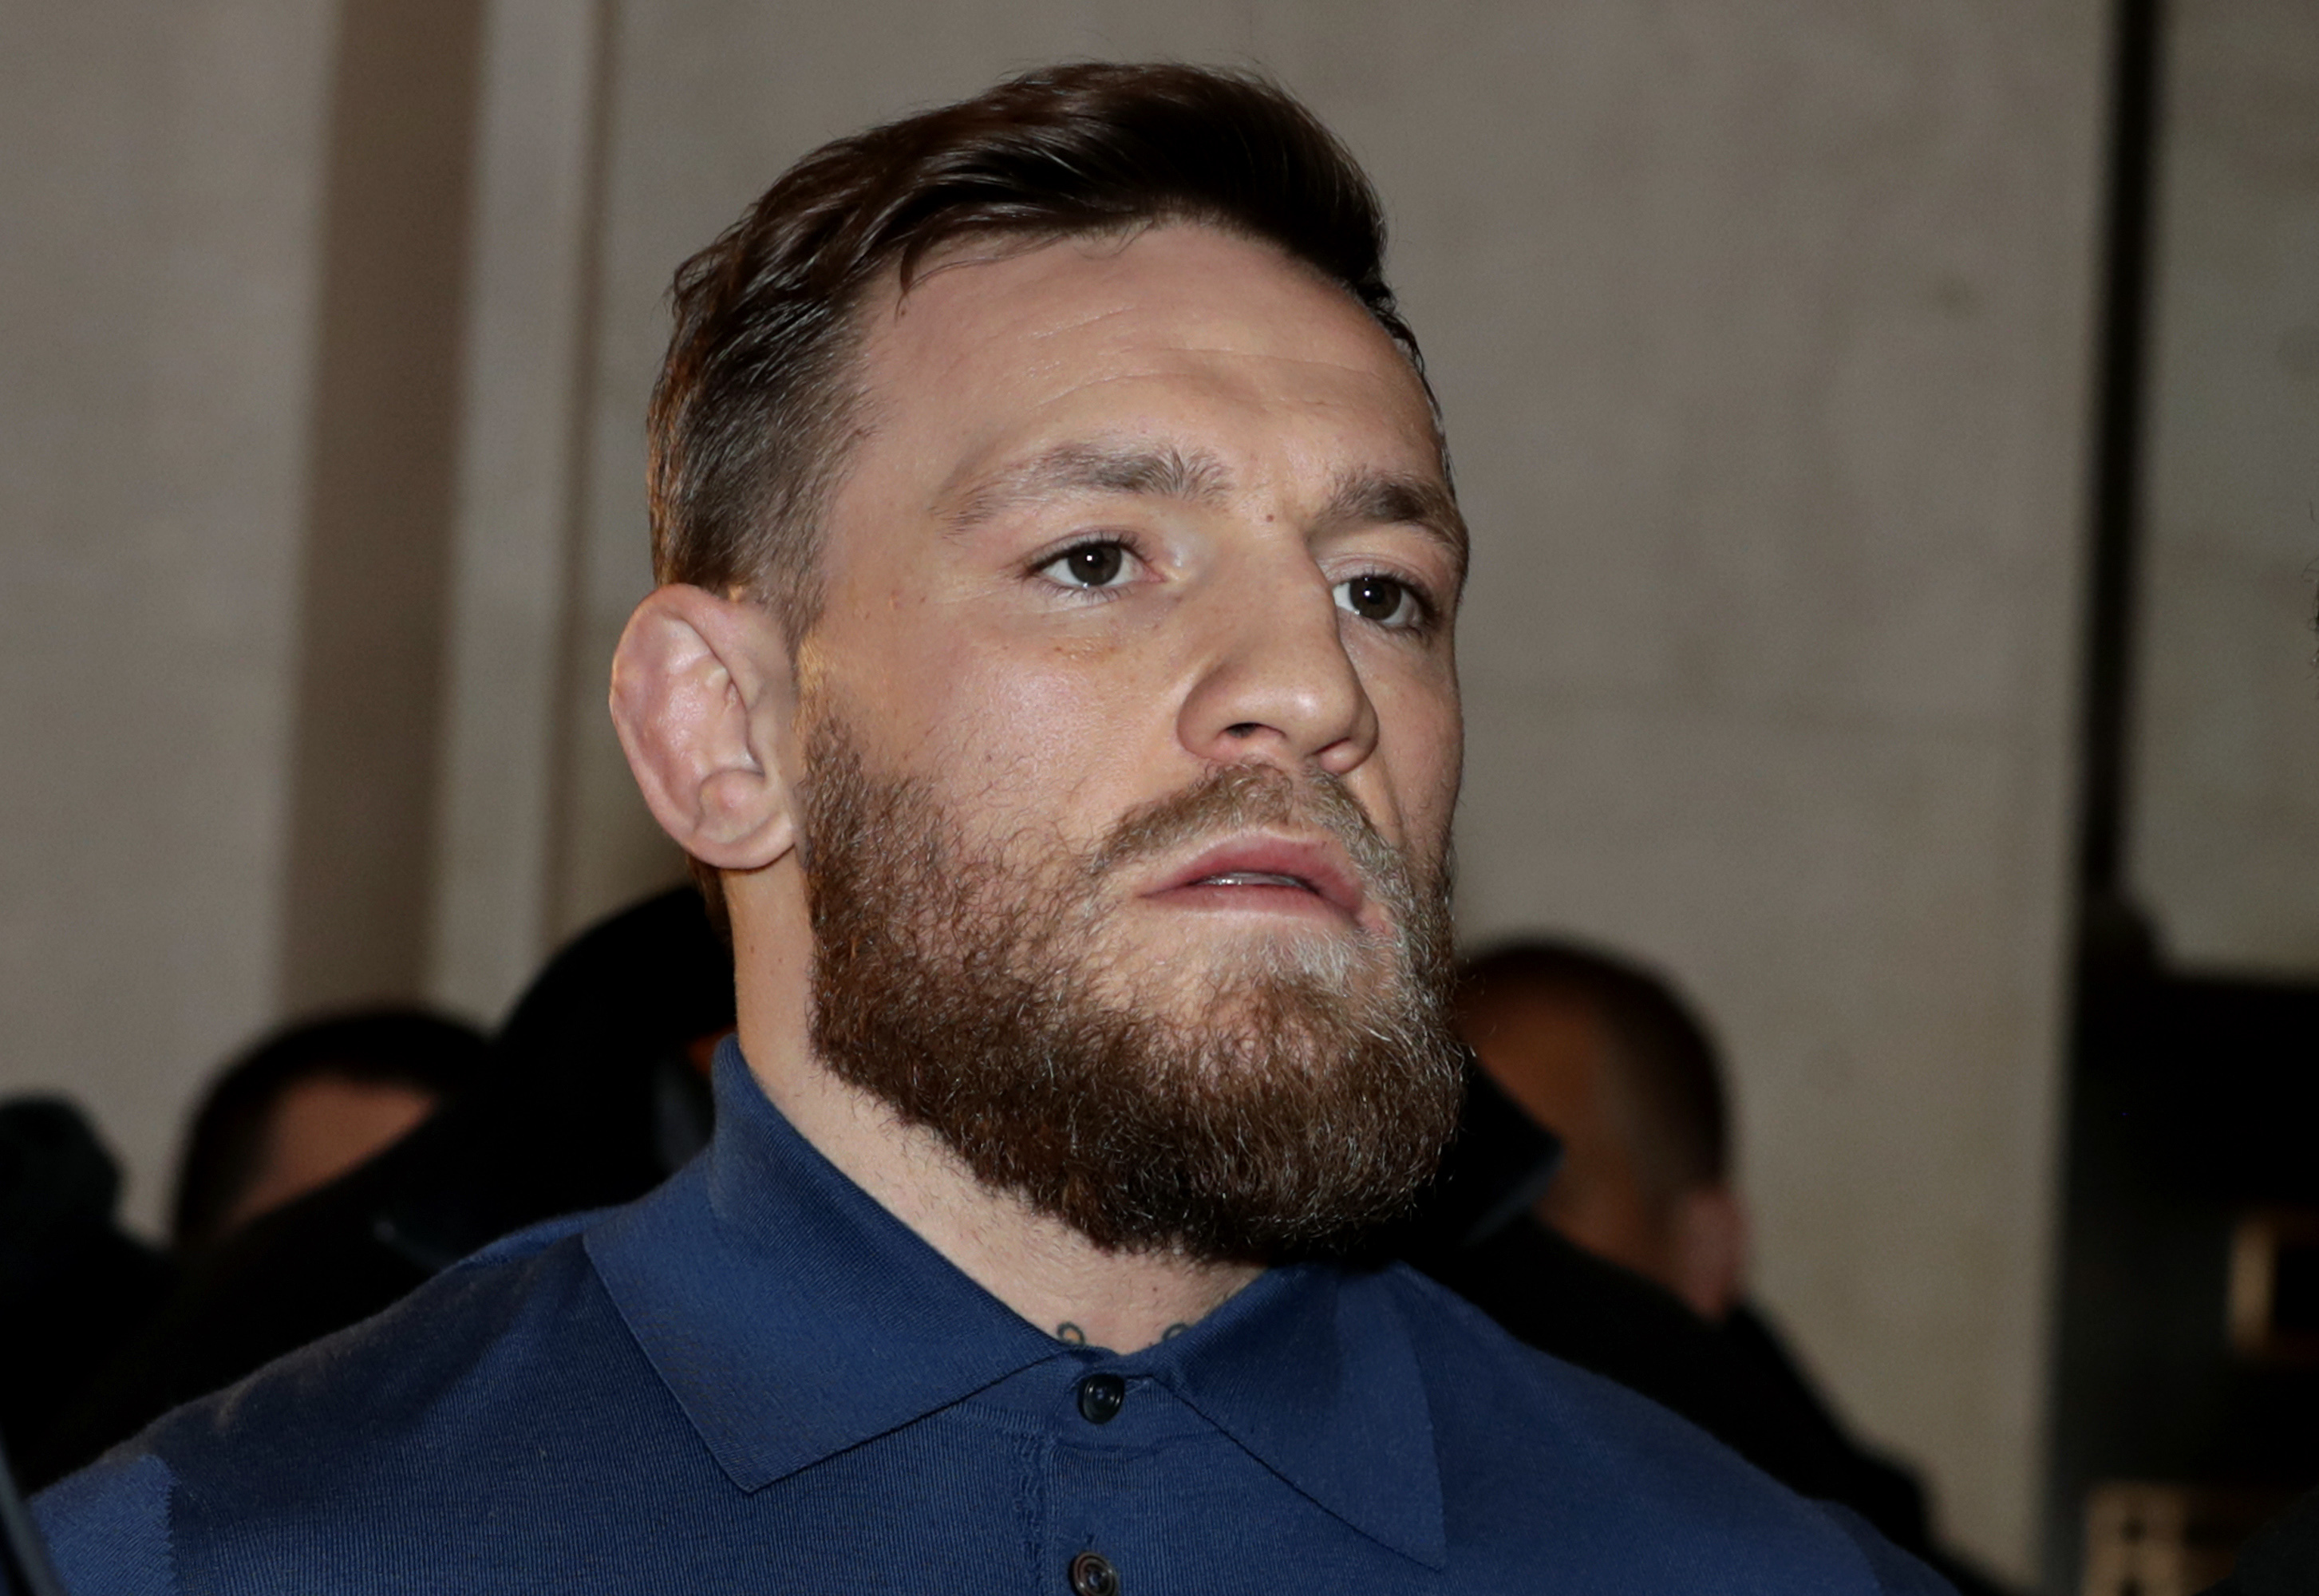 Mixed martial arts star Conor McGregor pleads guilty in melee case